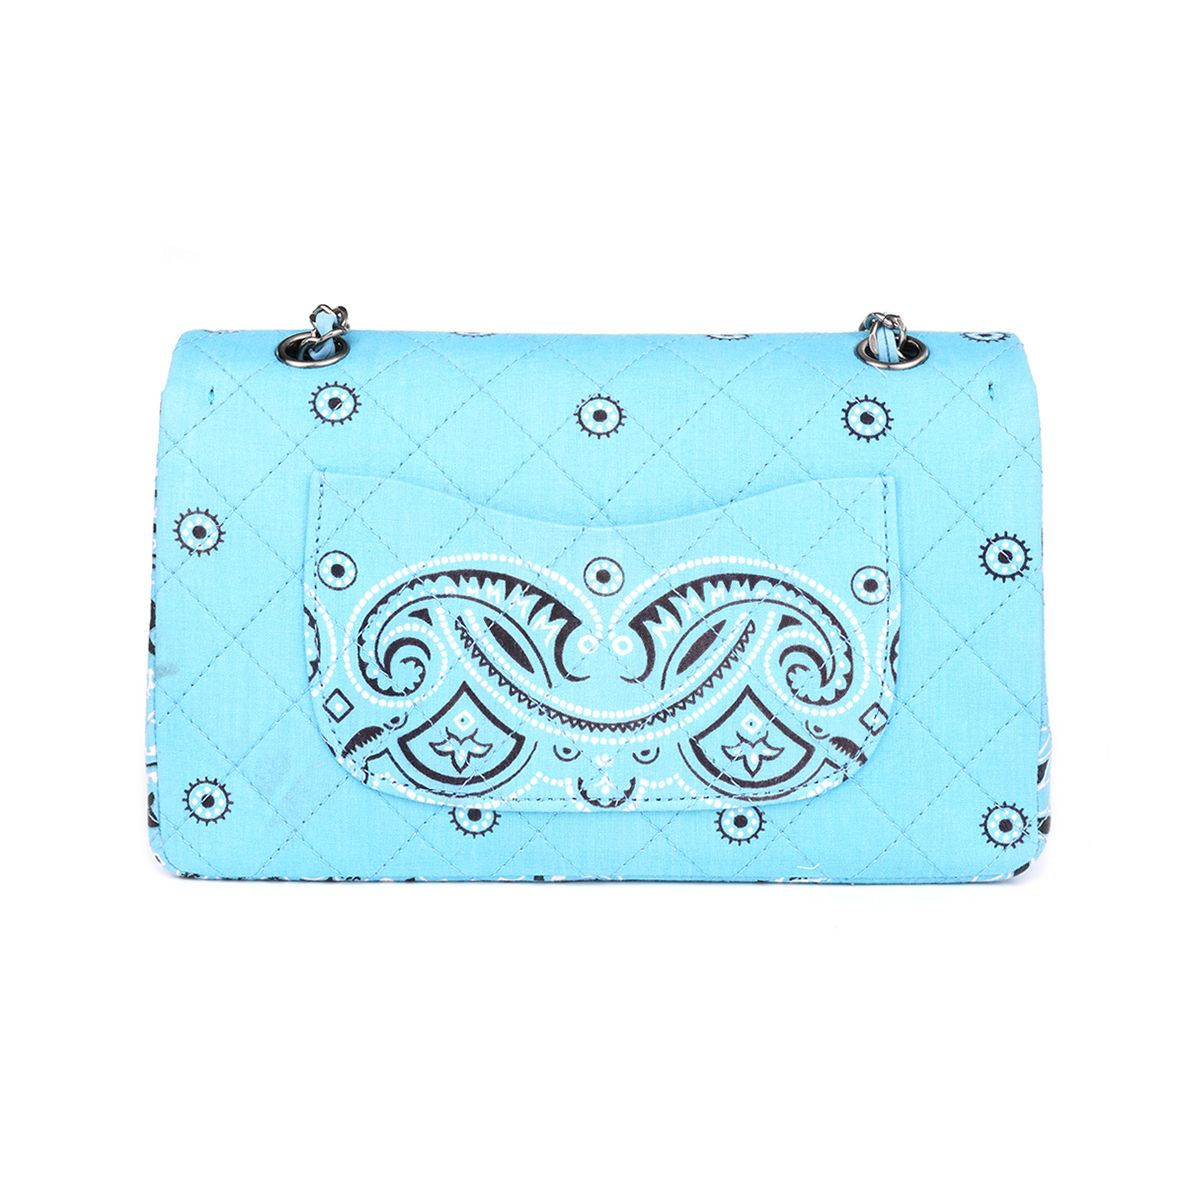 READYMADE CHAIN BAG BANDANA / ASSORT(L.BLUE)